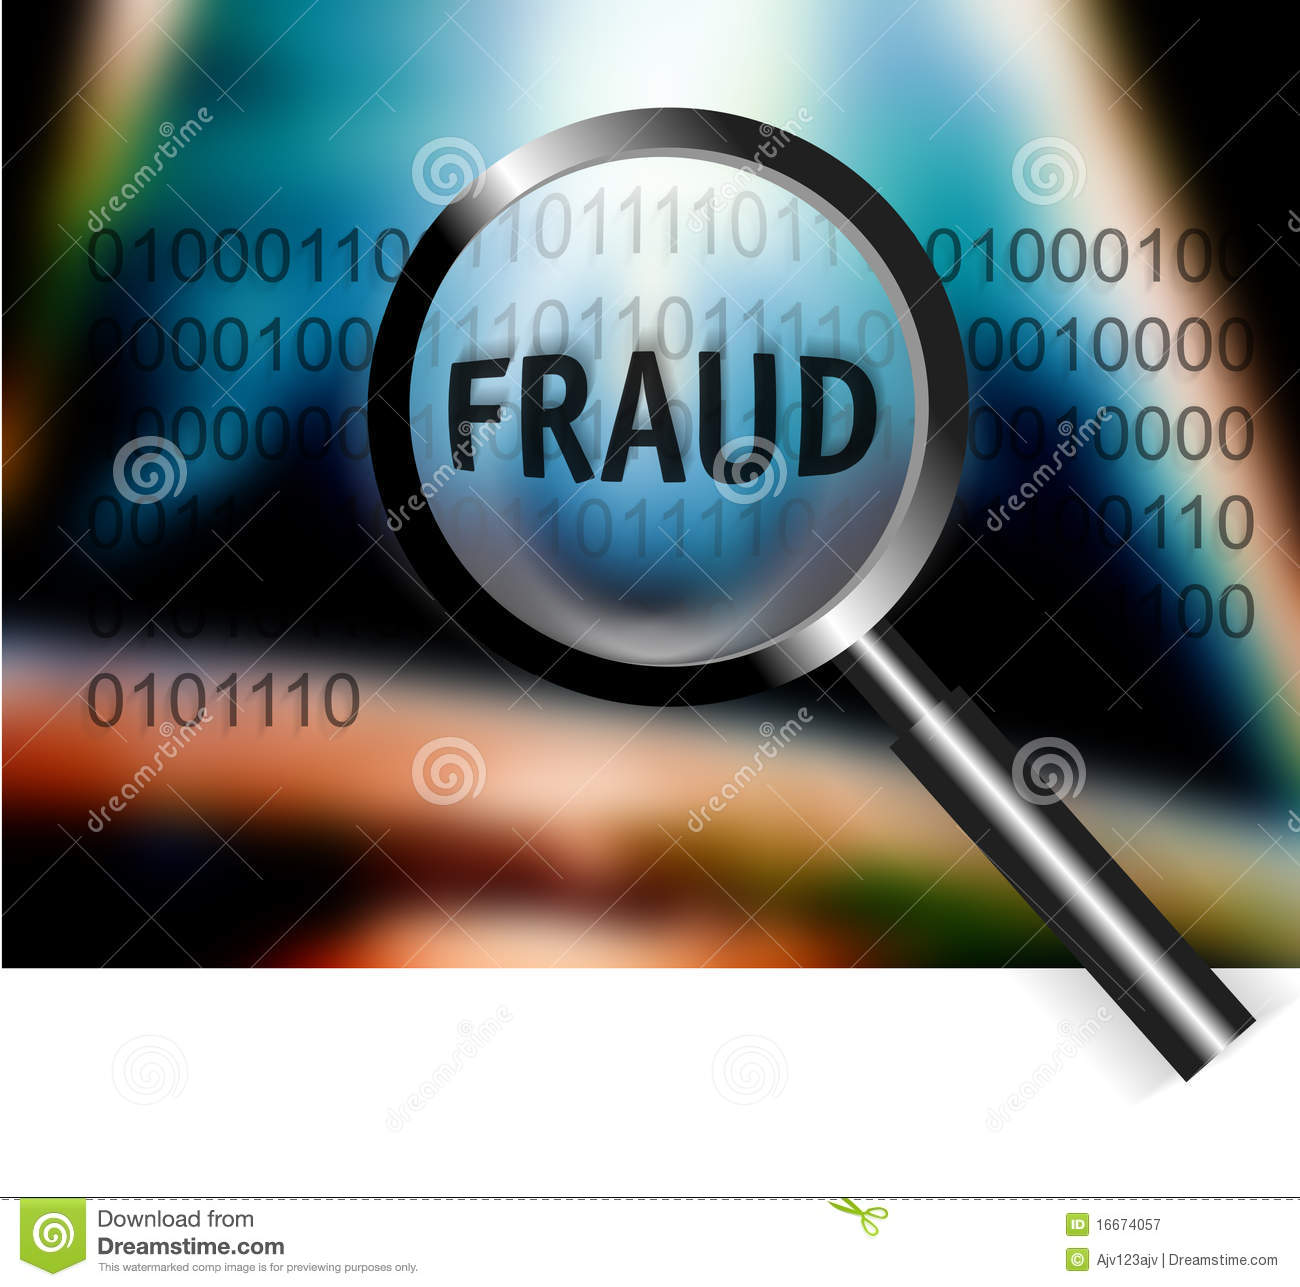 Security Concept Focus Fraud Investigation